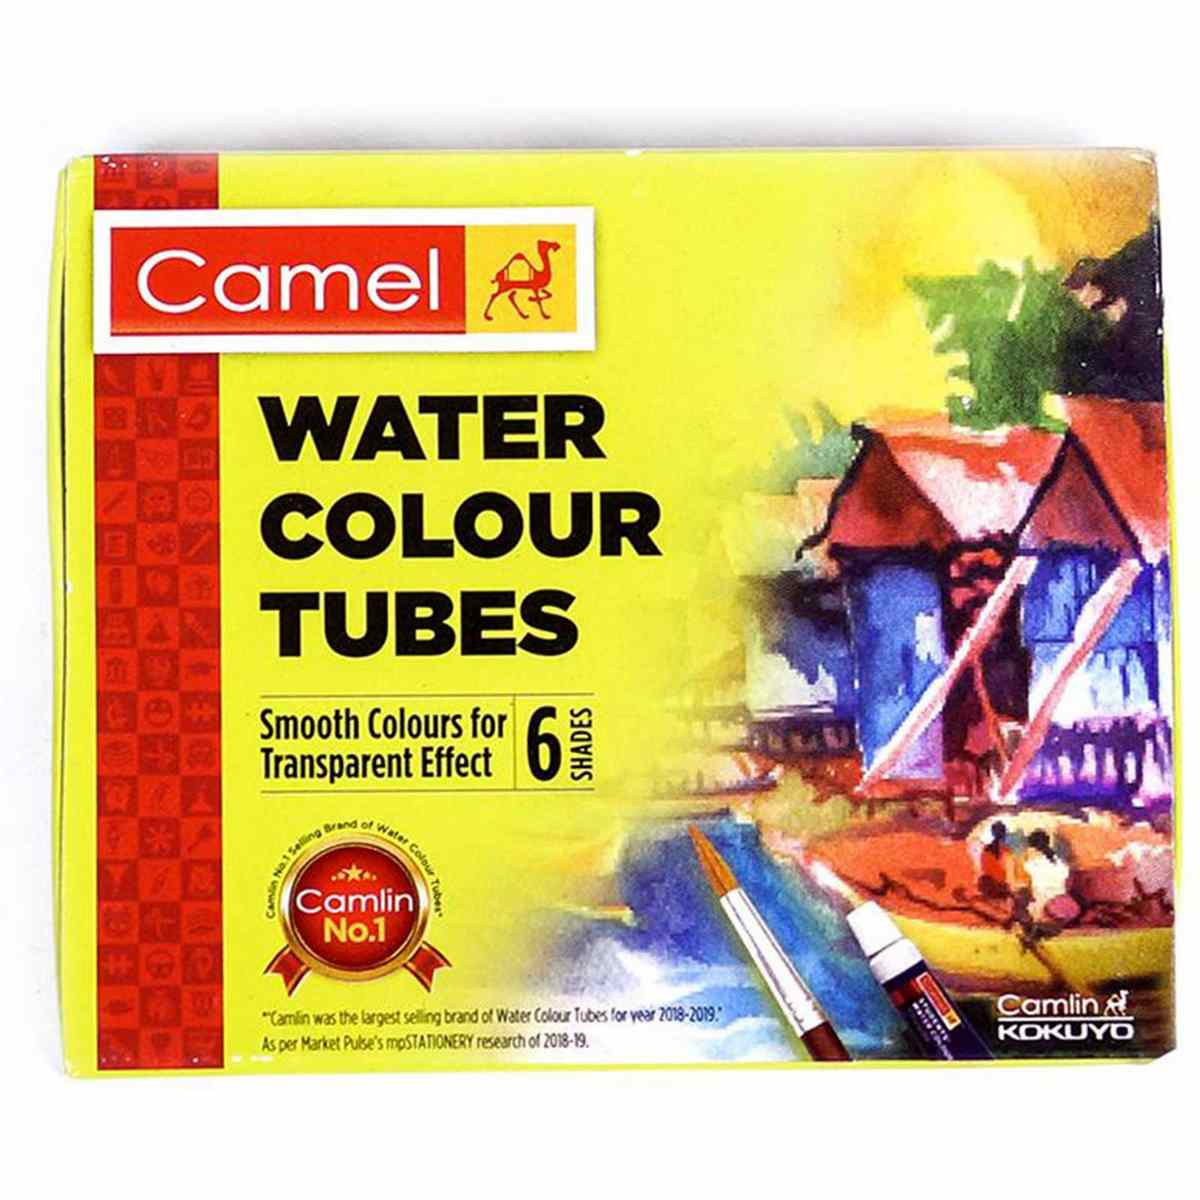 Camel Water Colour Tubes (Pack of 6 Tubes each 5ml)